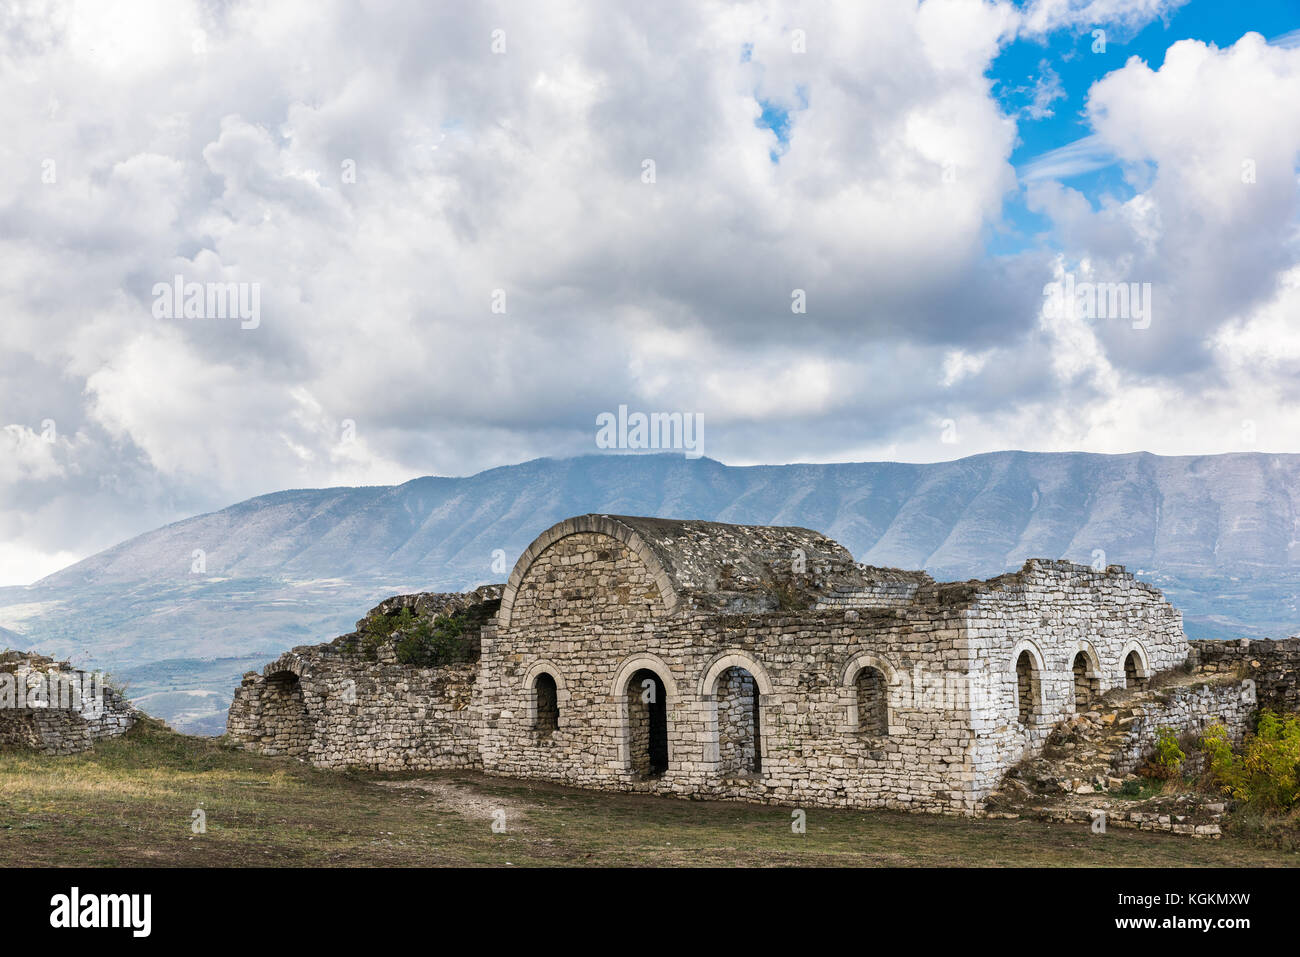 Ruin at the castle in the city of Berat in Albania - Stock Image